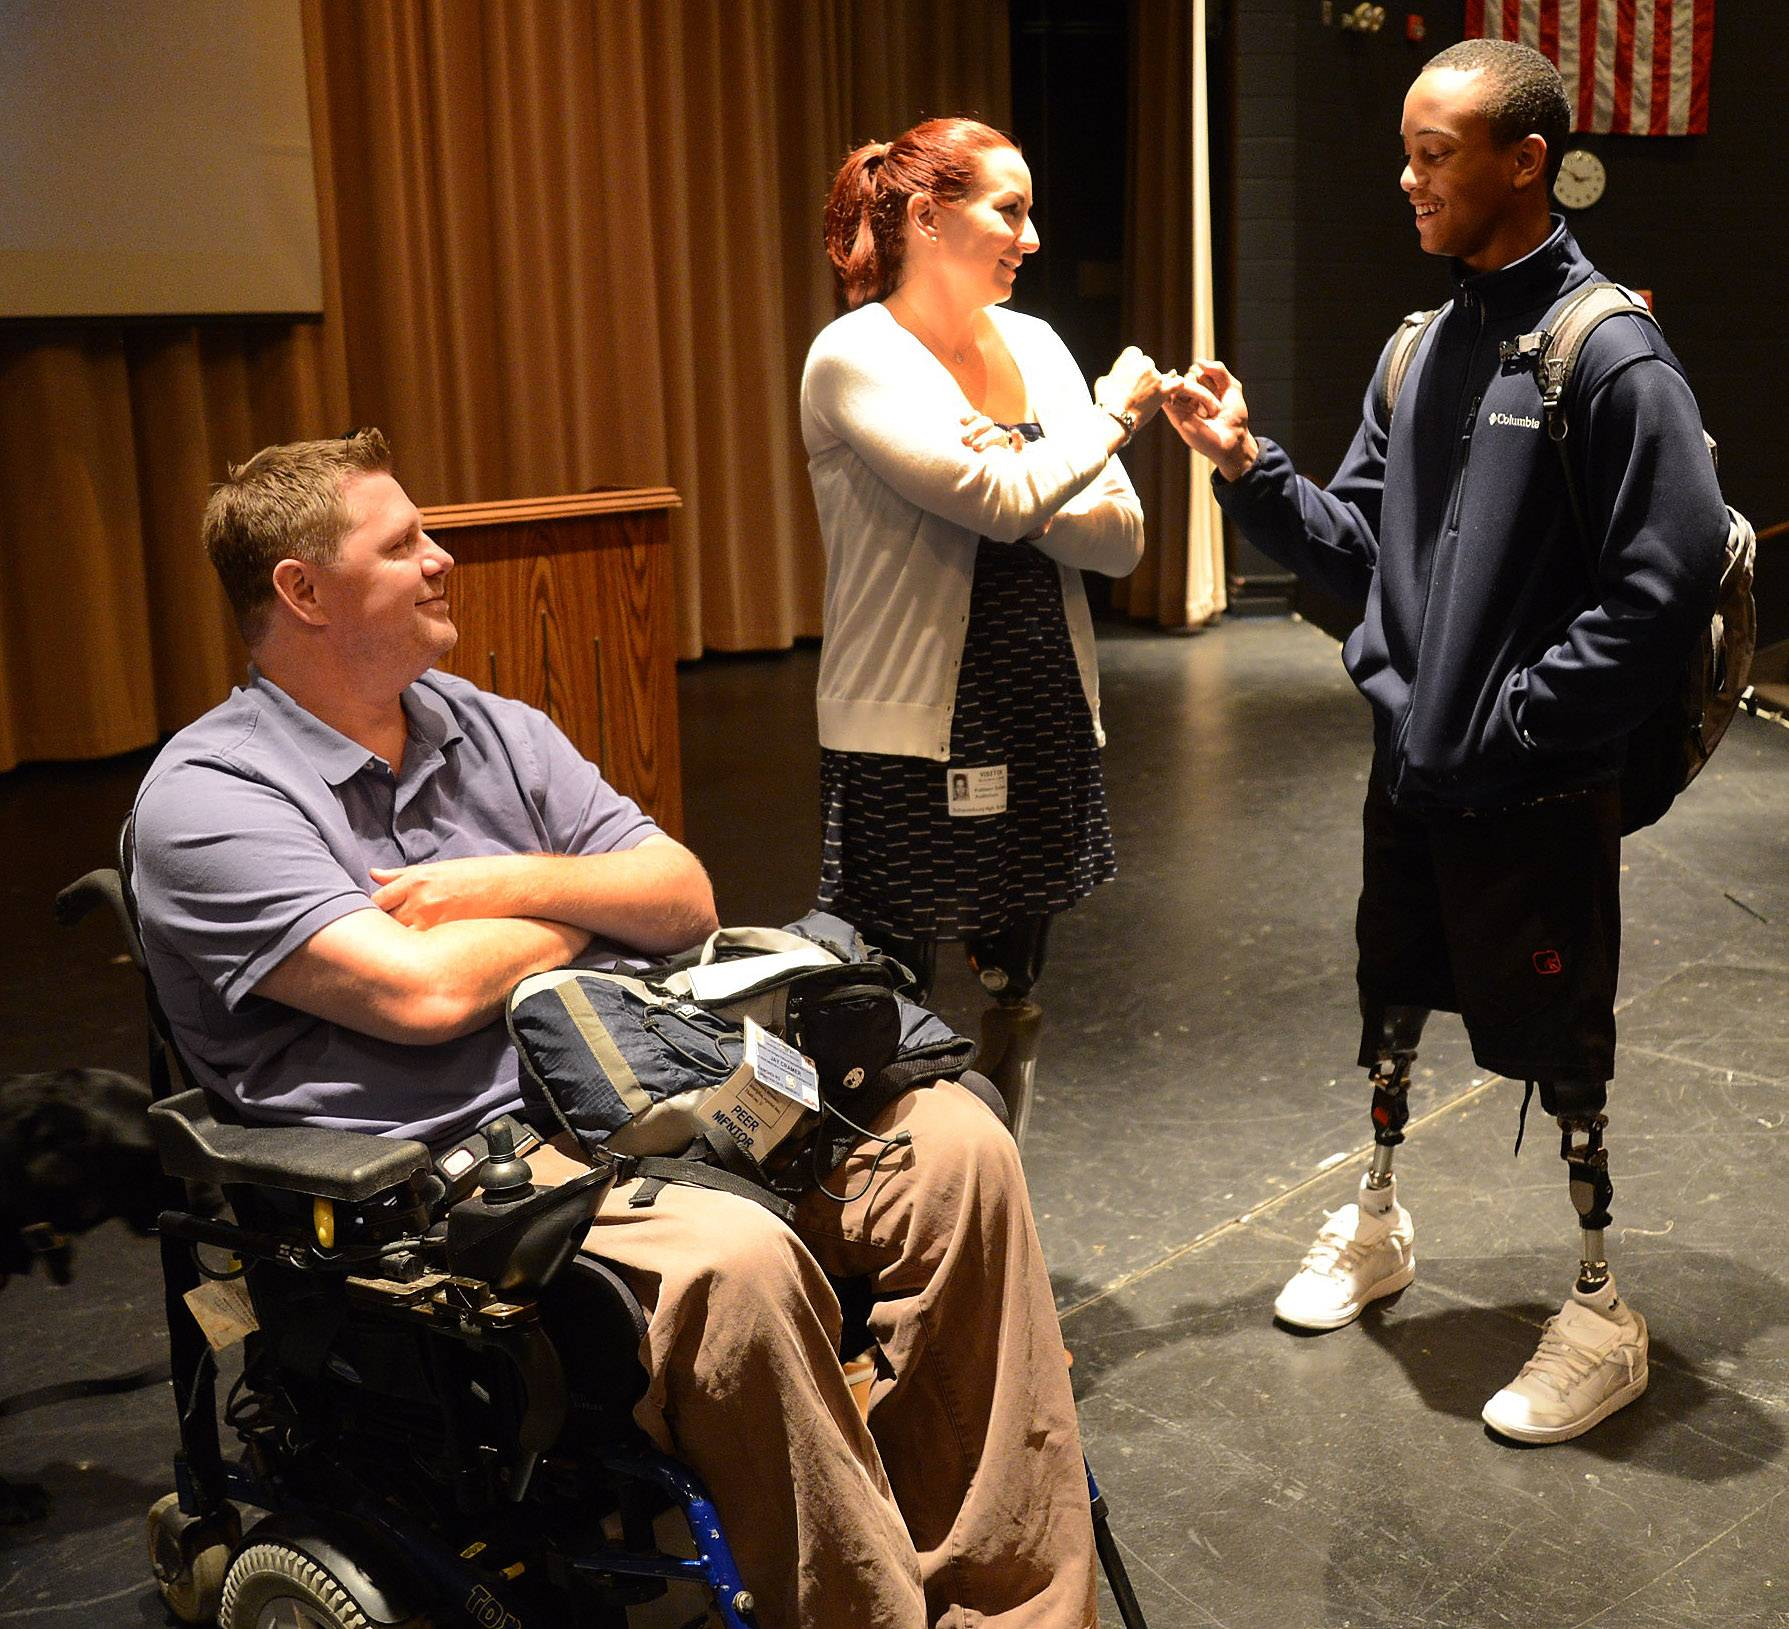 Jay Cramer and his wife, Katy Sullivan, meet with Schaumburg High student Sabik Cohran, born without legs.